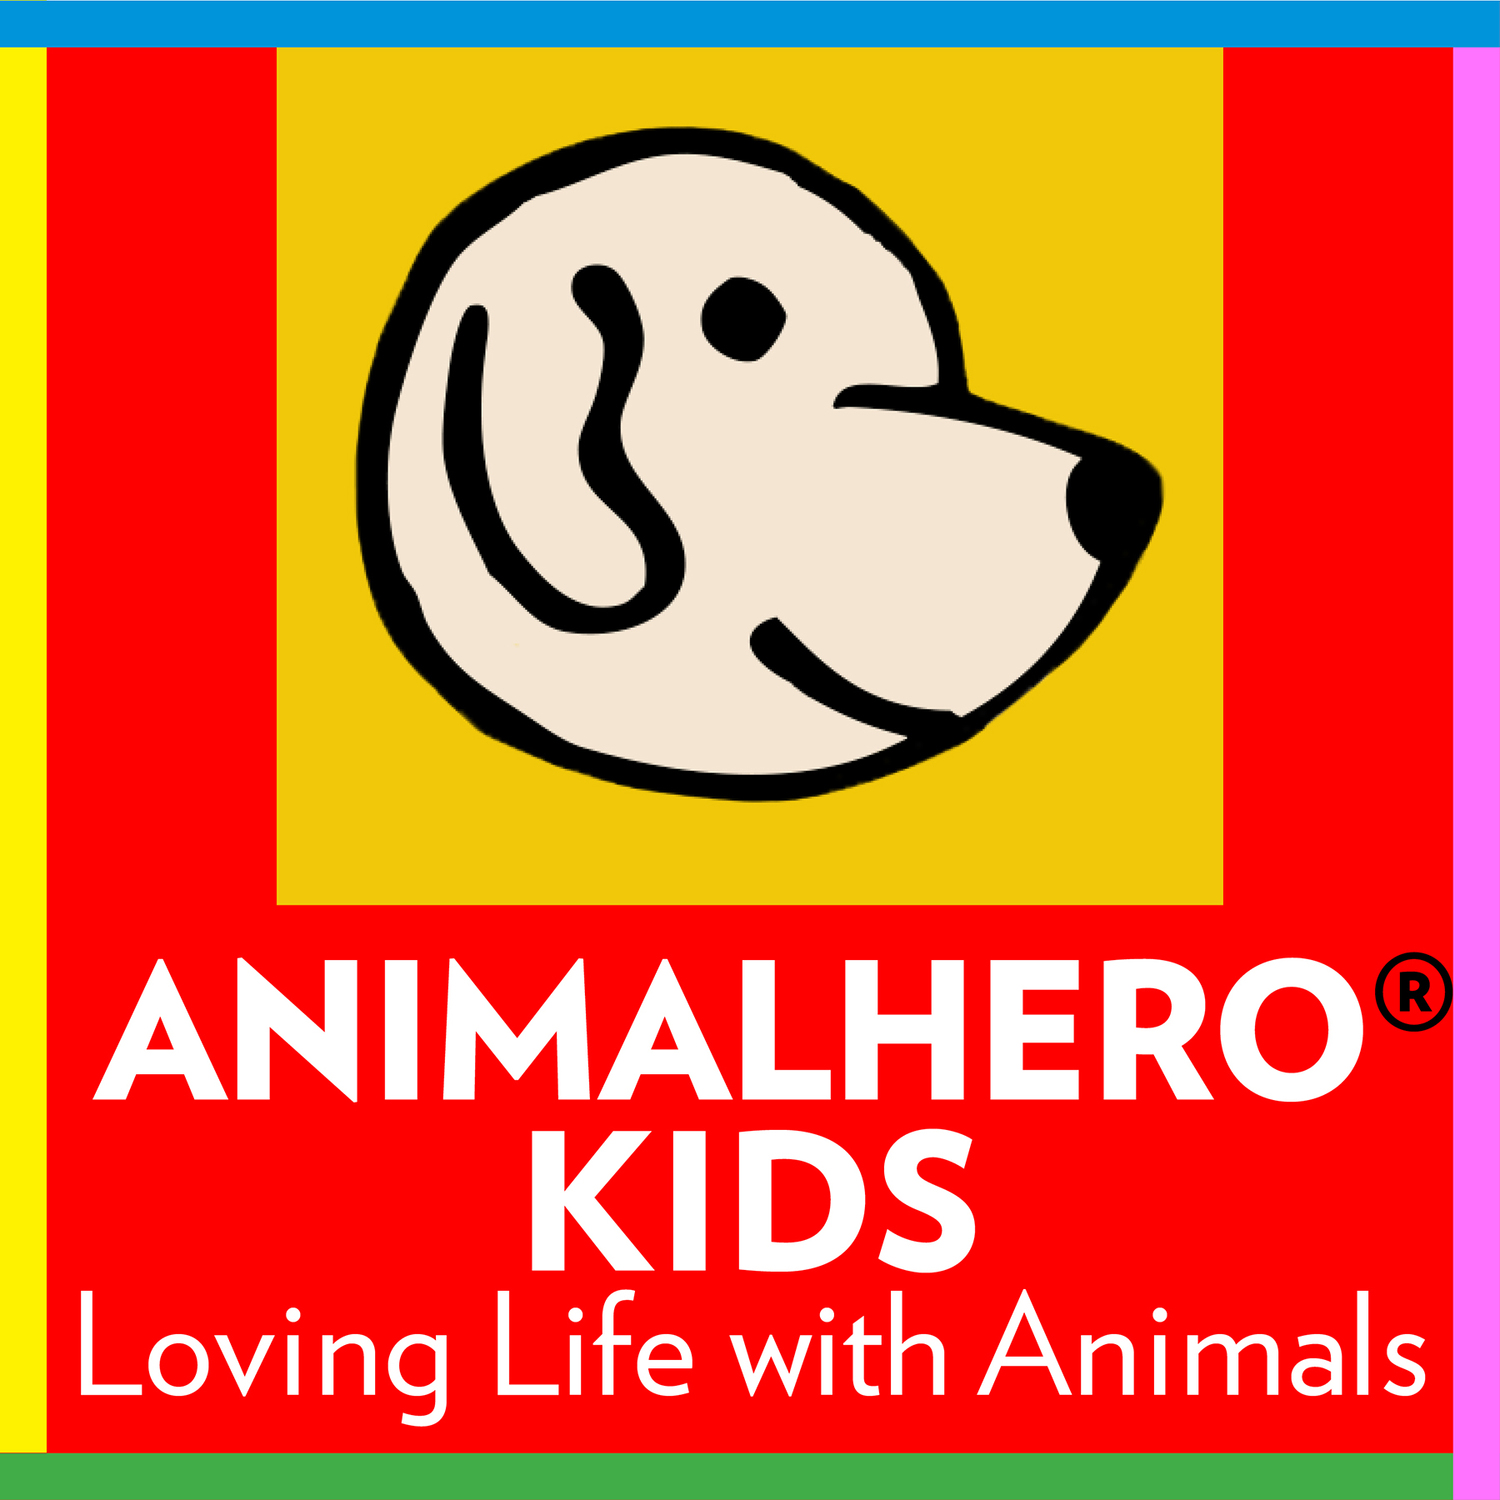 AnimalHero Kids